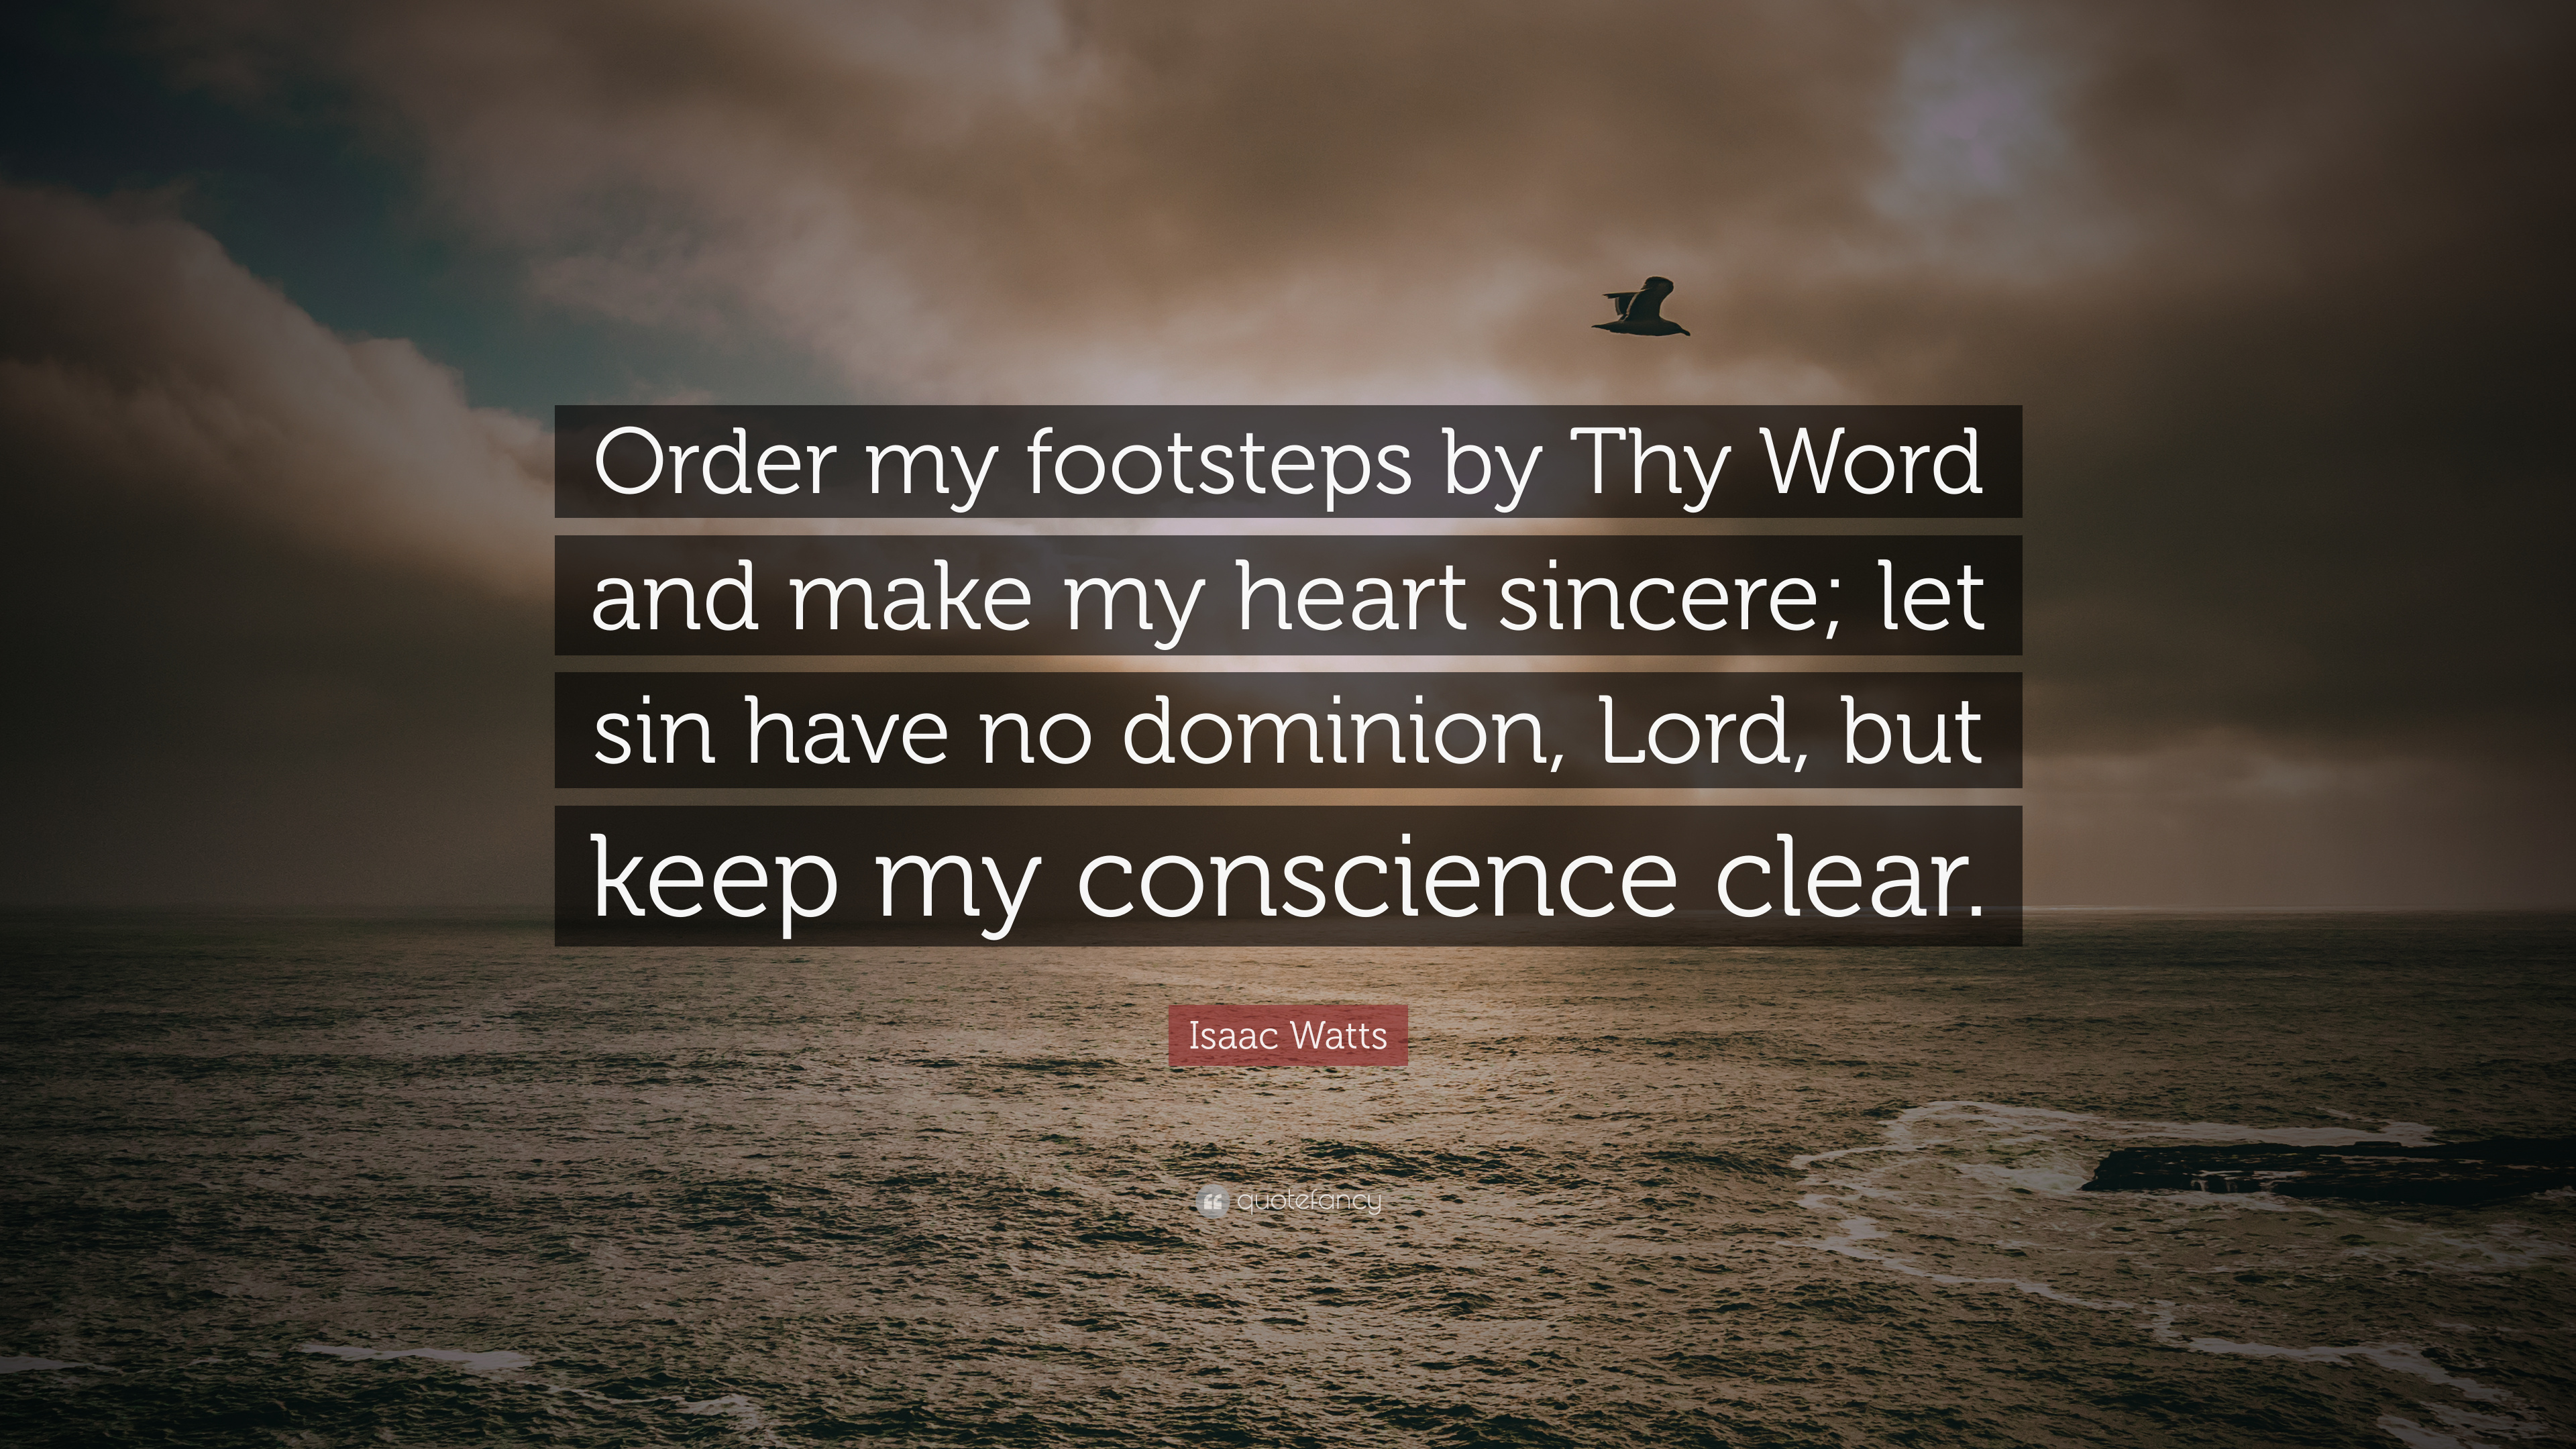 Isaac Watts Quote   U201corder My Footsteps By Thy Word And